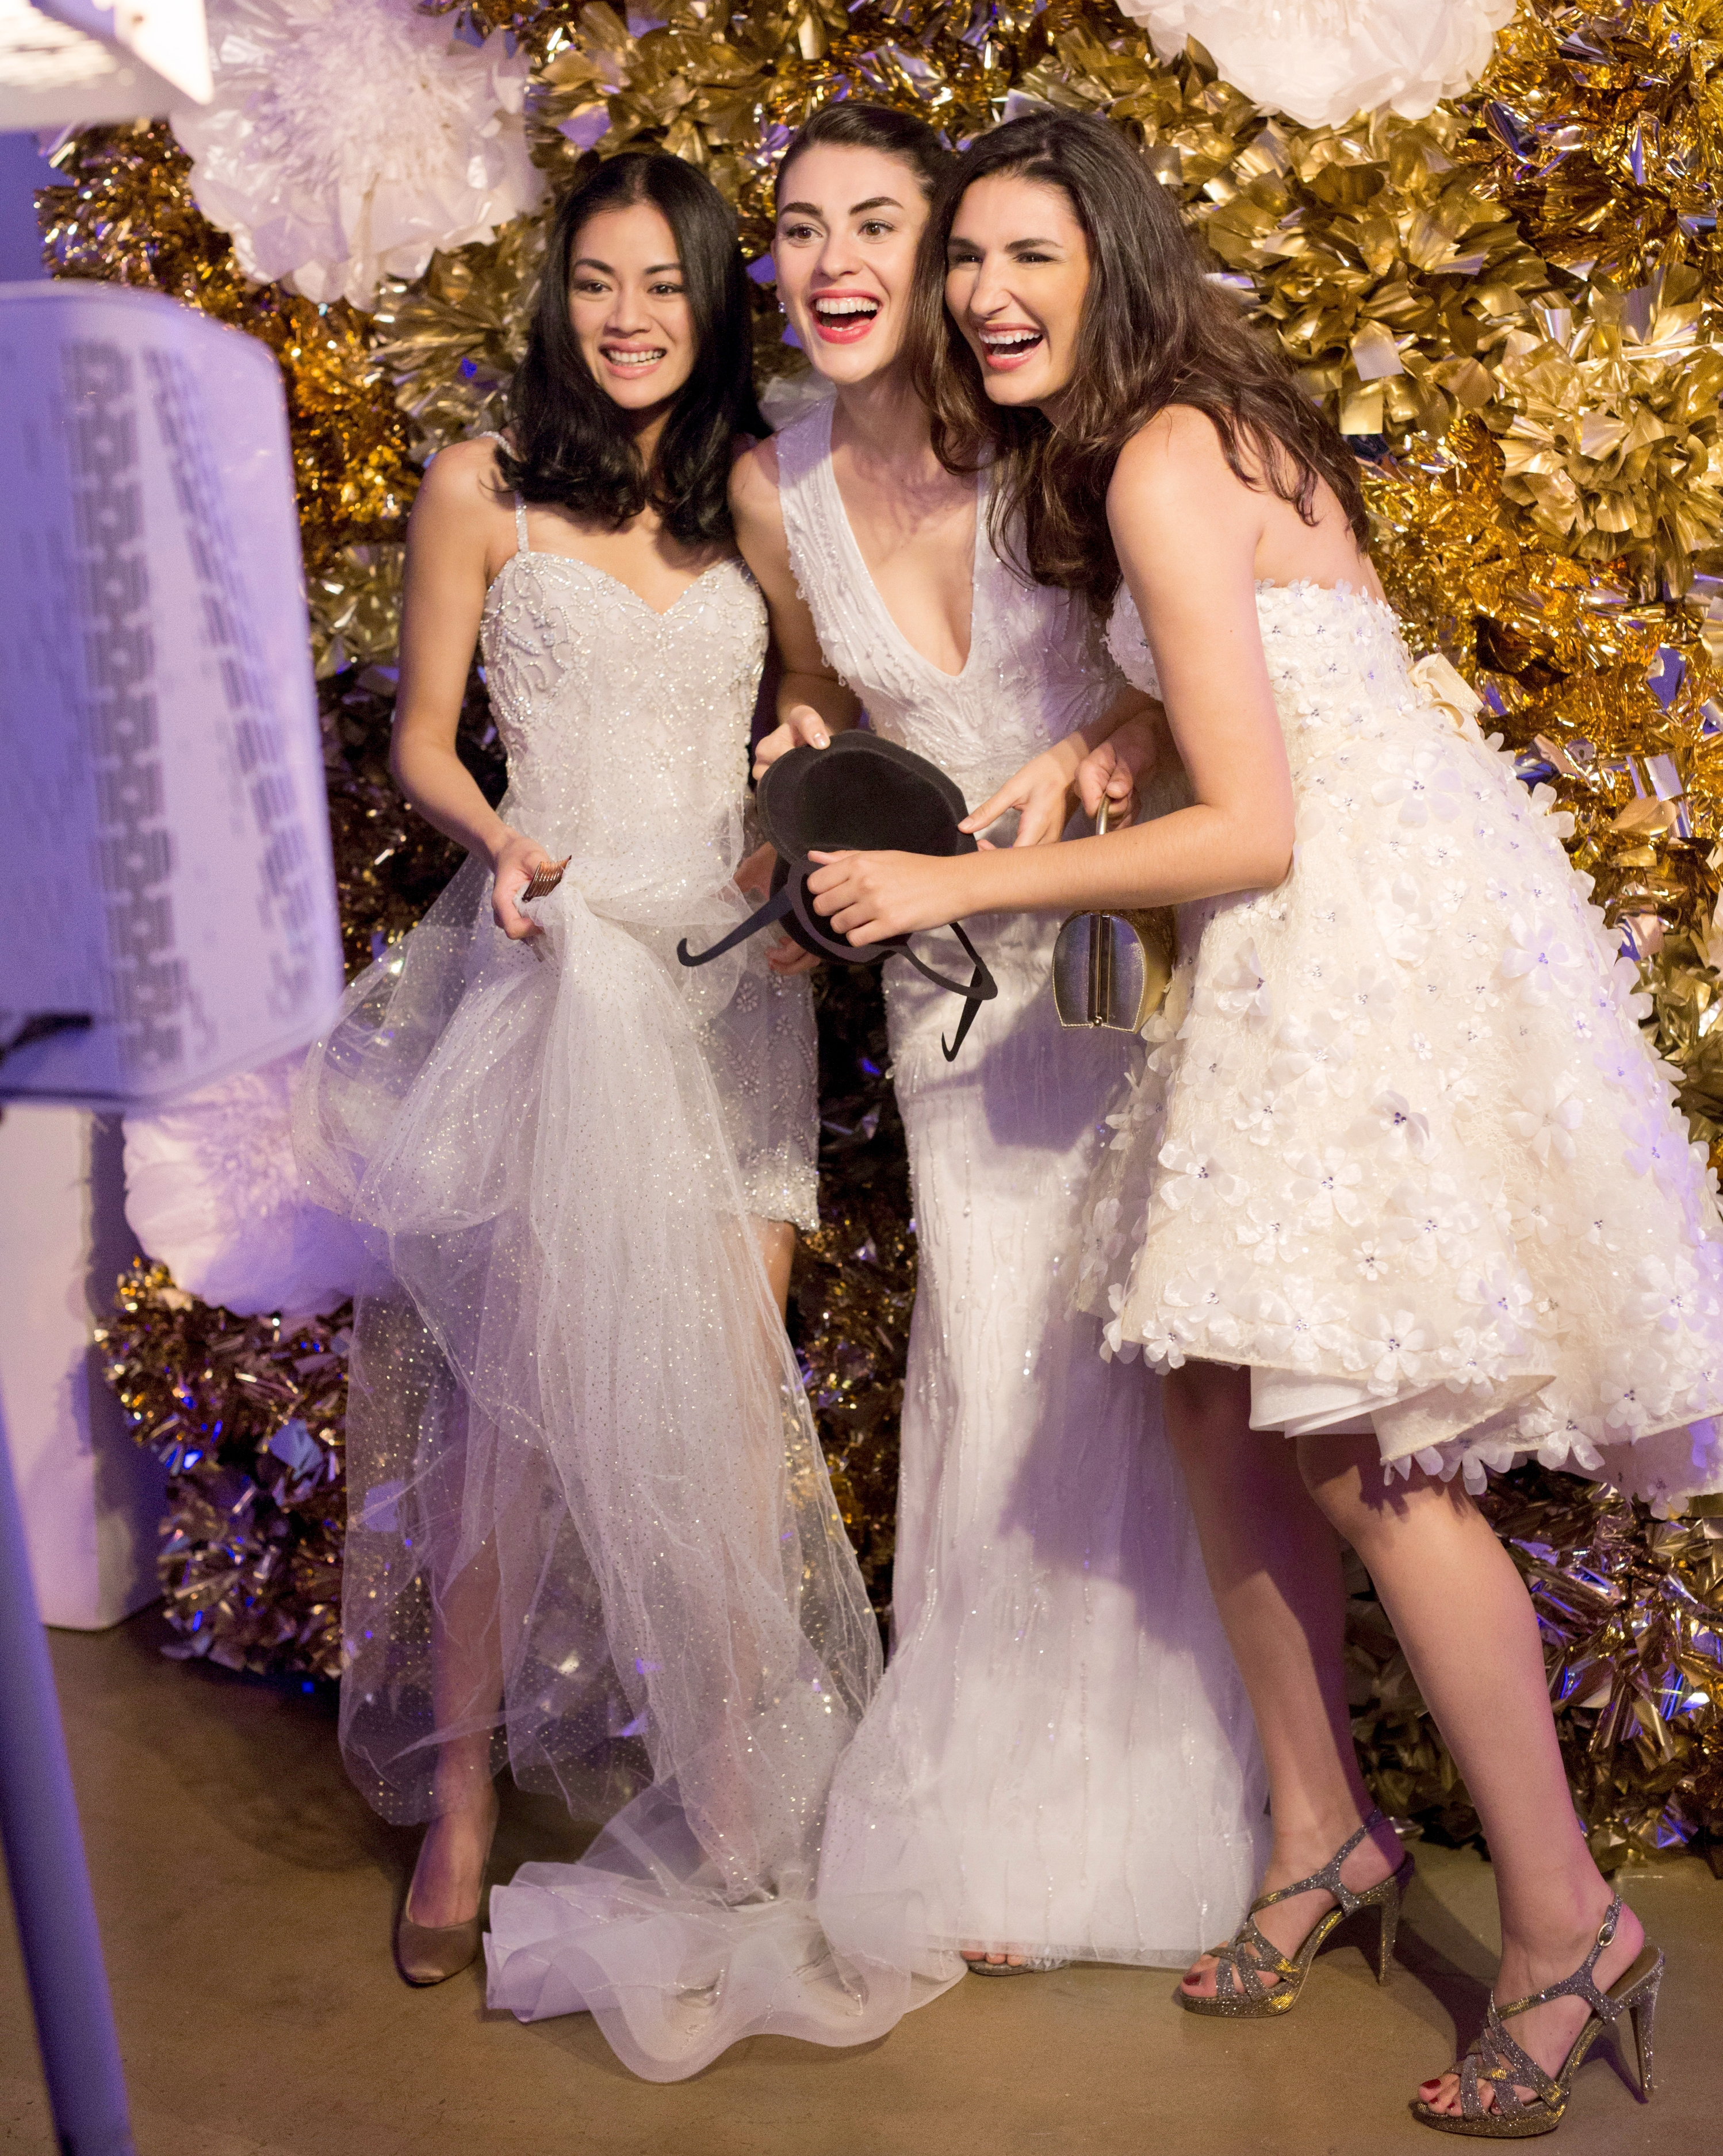 martha-weddings-party-2015-smilebooth-0301-1015.jpg